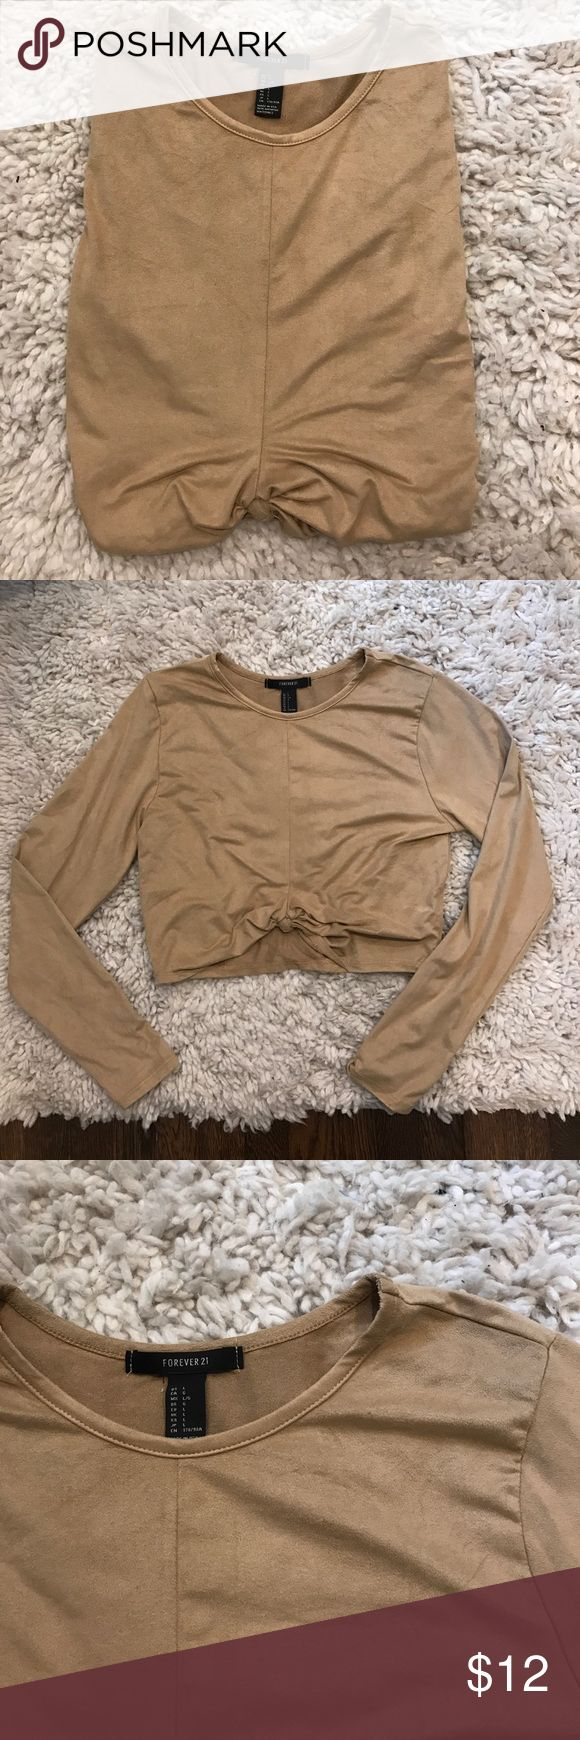 Forever 21 camel crop knot top Faux suede - awesome knotted crop top for any occasion Forever 21 Tops Crop Tops